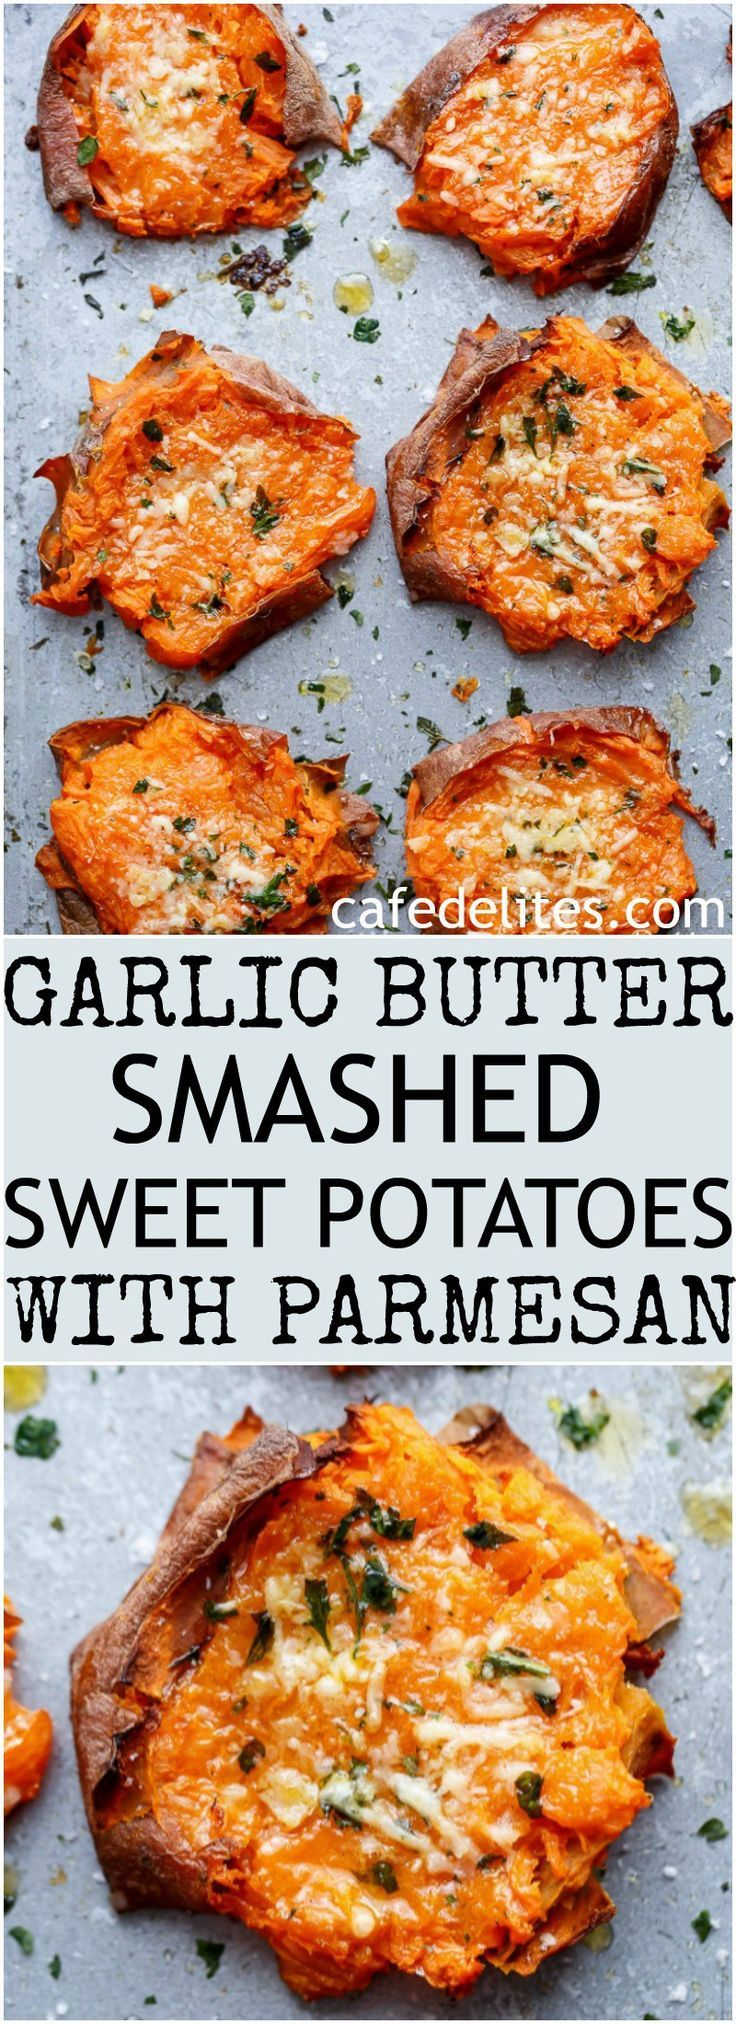 Garlic Butter Smashed Sweet Potatoes With Parmesan Cheese are crispy and buttery on the outside, while soft and sweet on the inside, making way for one of the best ways to eat a sweet potato! | https://cafedelites.com